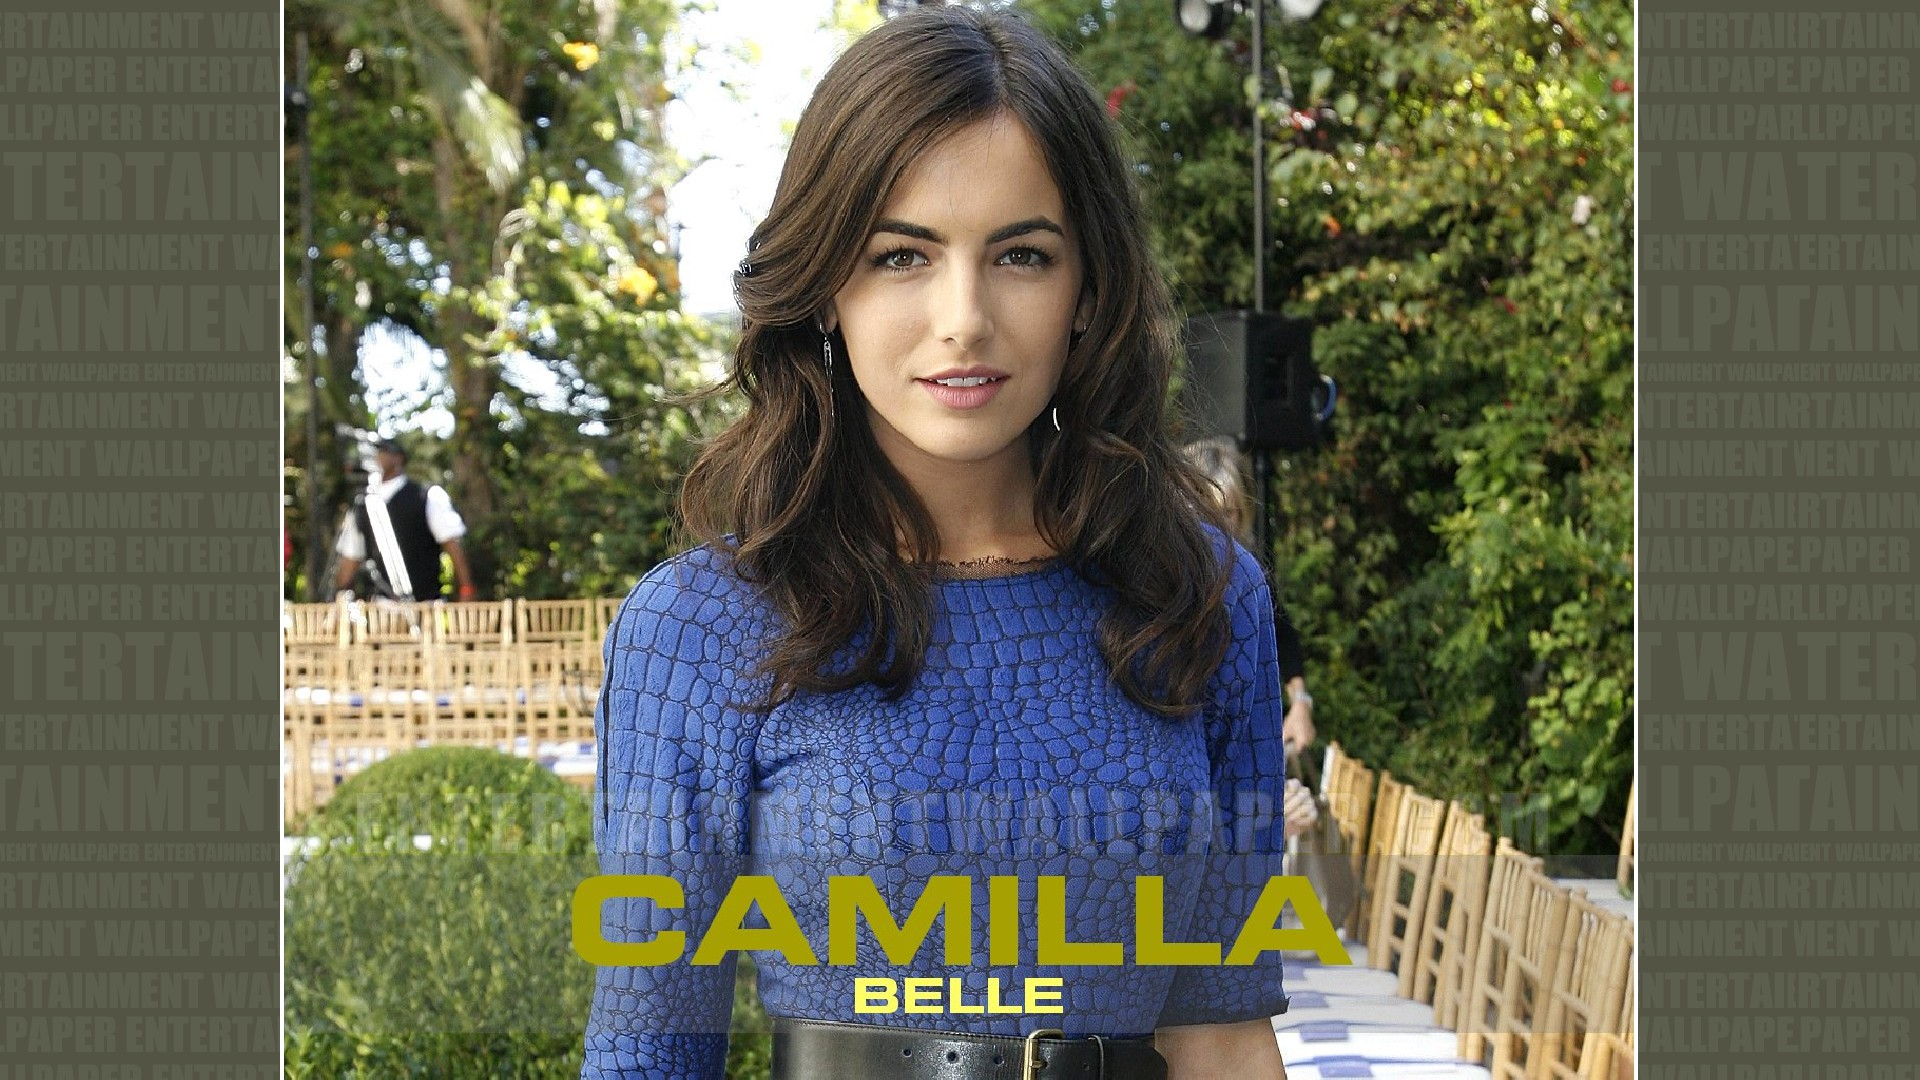 1920x1080 - Camilla Belle Wallpapers 28